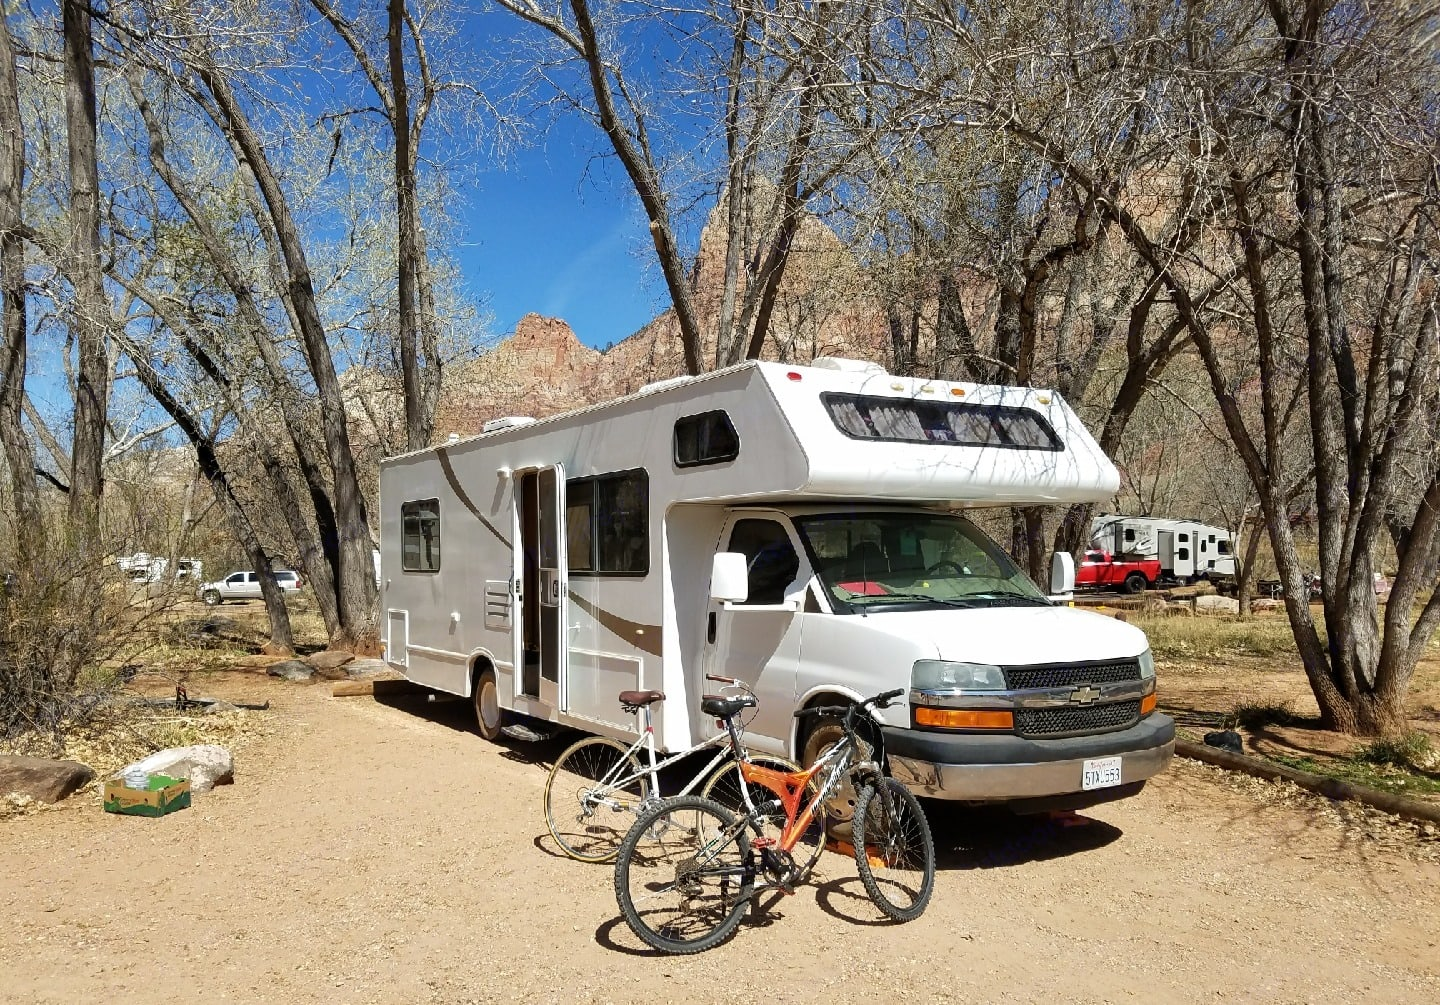 Nice 28 foot class c with queen bed in back sleeps up to 7.  4 separate sleeping areas. Easy to drive, fully self-container with generator, water/propane and holding tanks. Thor Motor Coach Four Winds Five Thousand C 2006